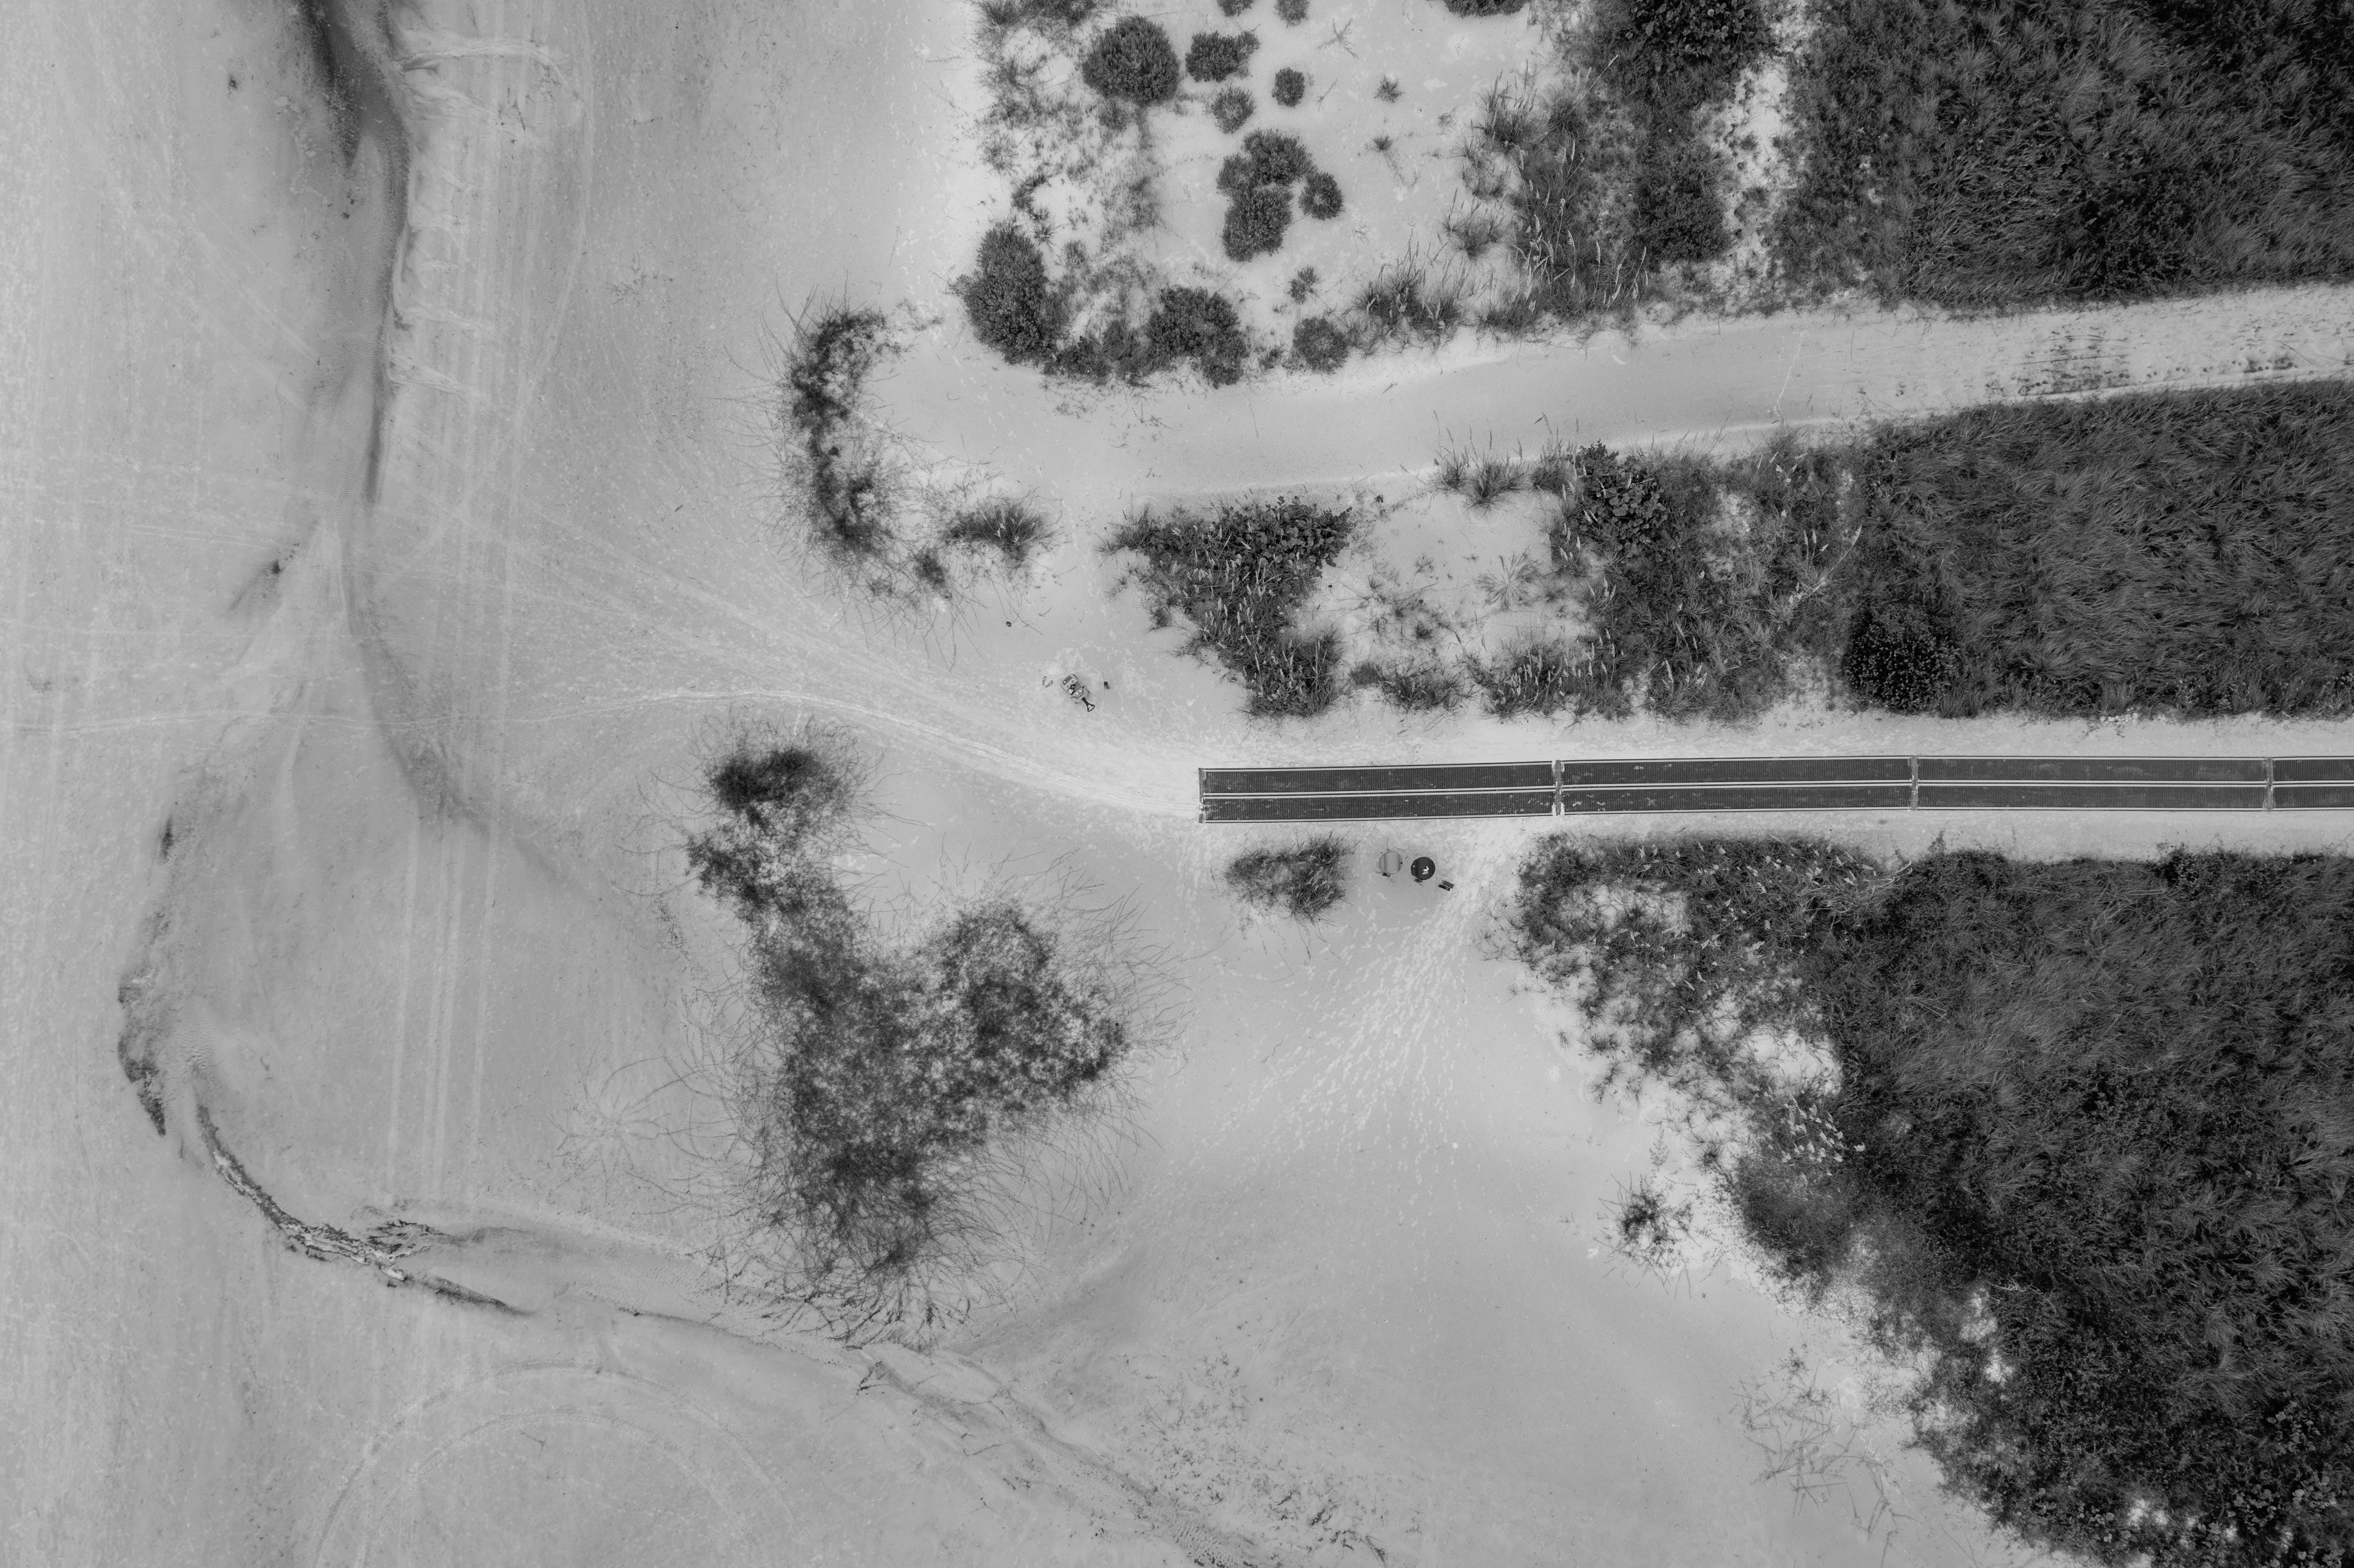 Grayscale Photography of Road in Topview